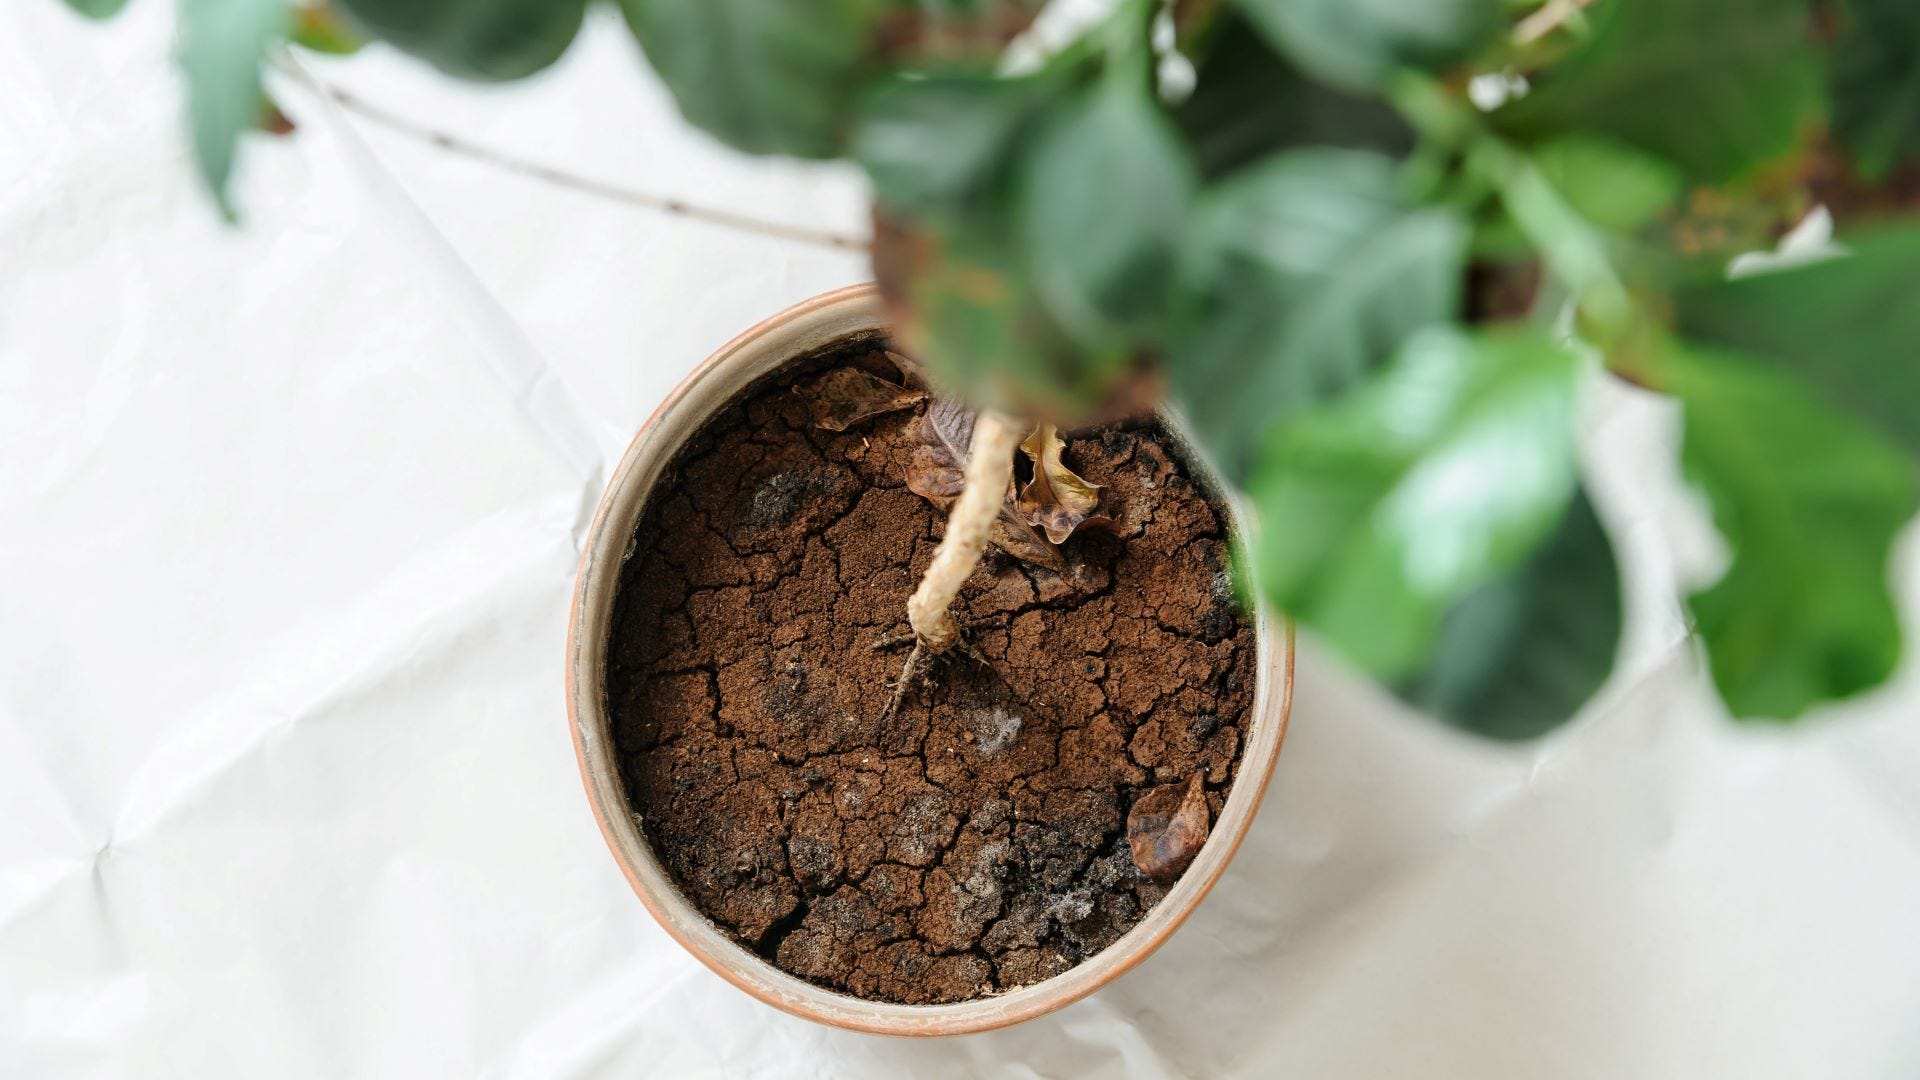 Dry soil in a plant.